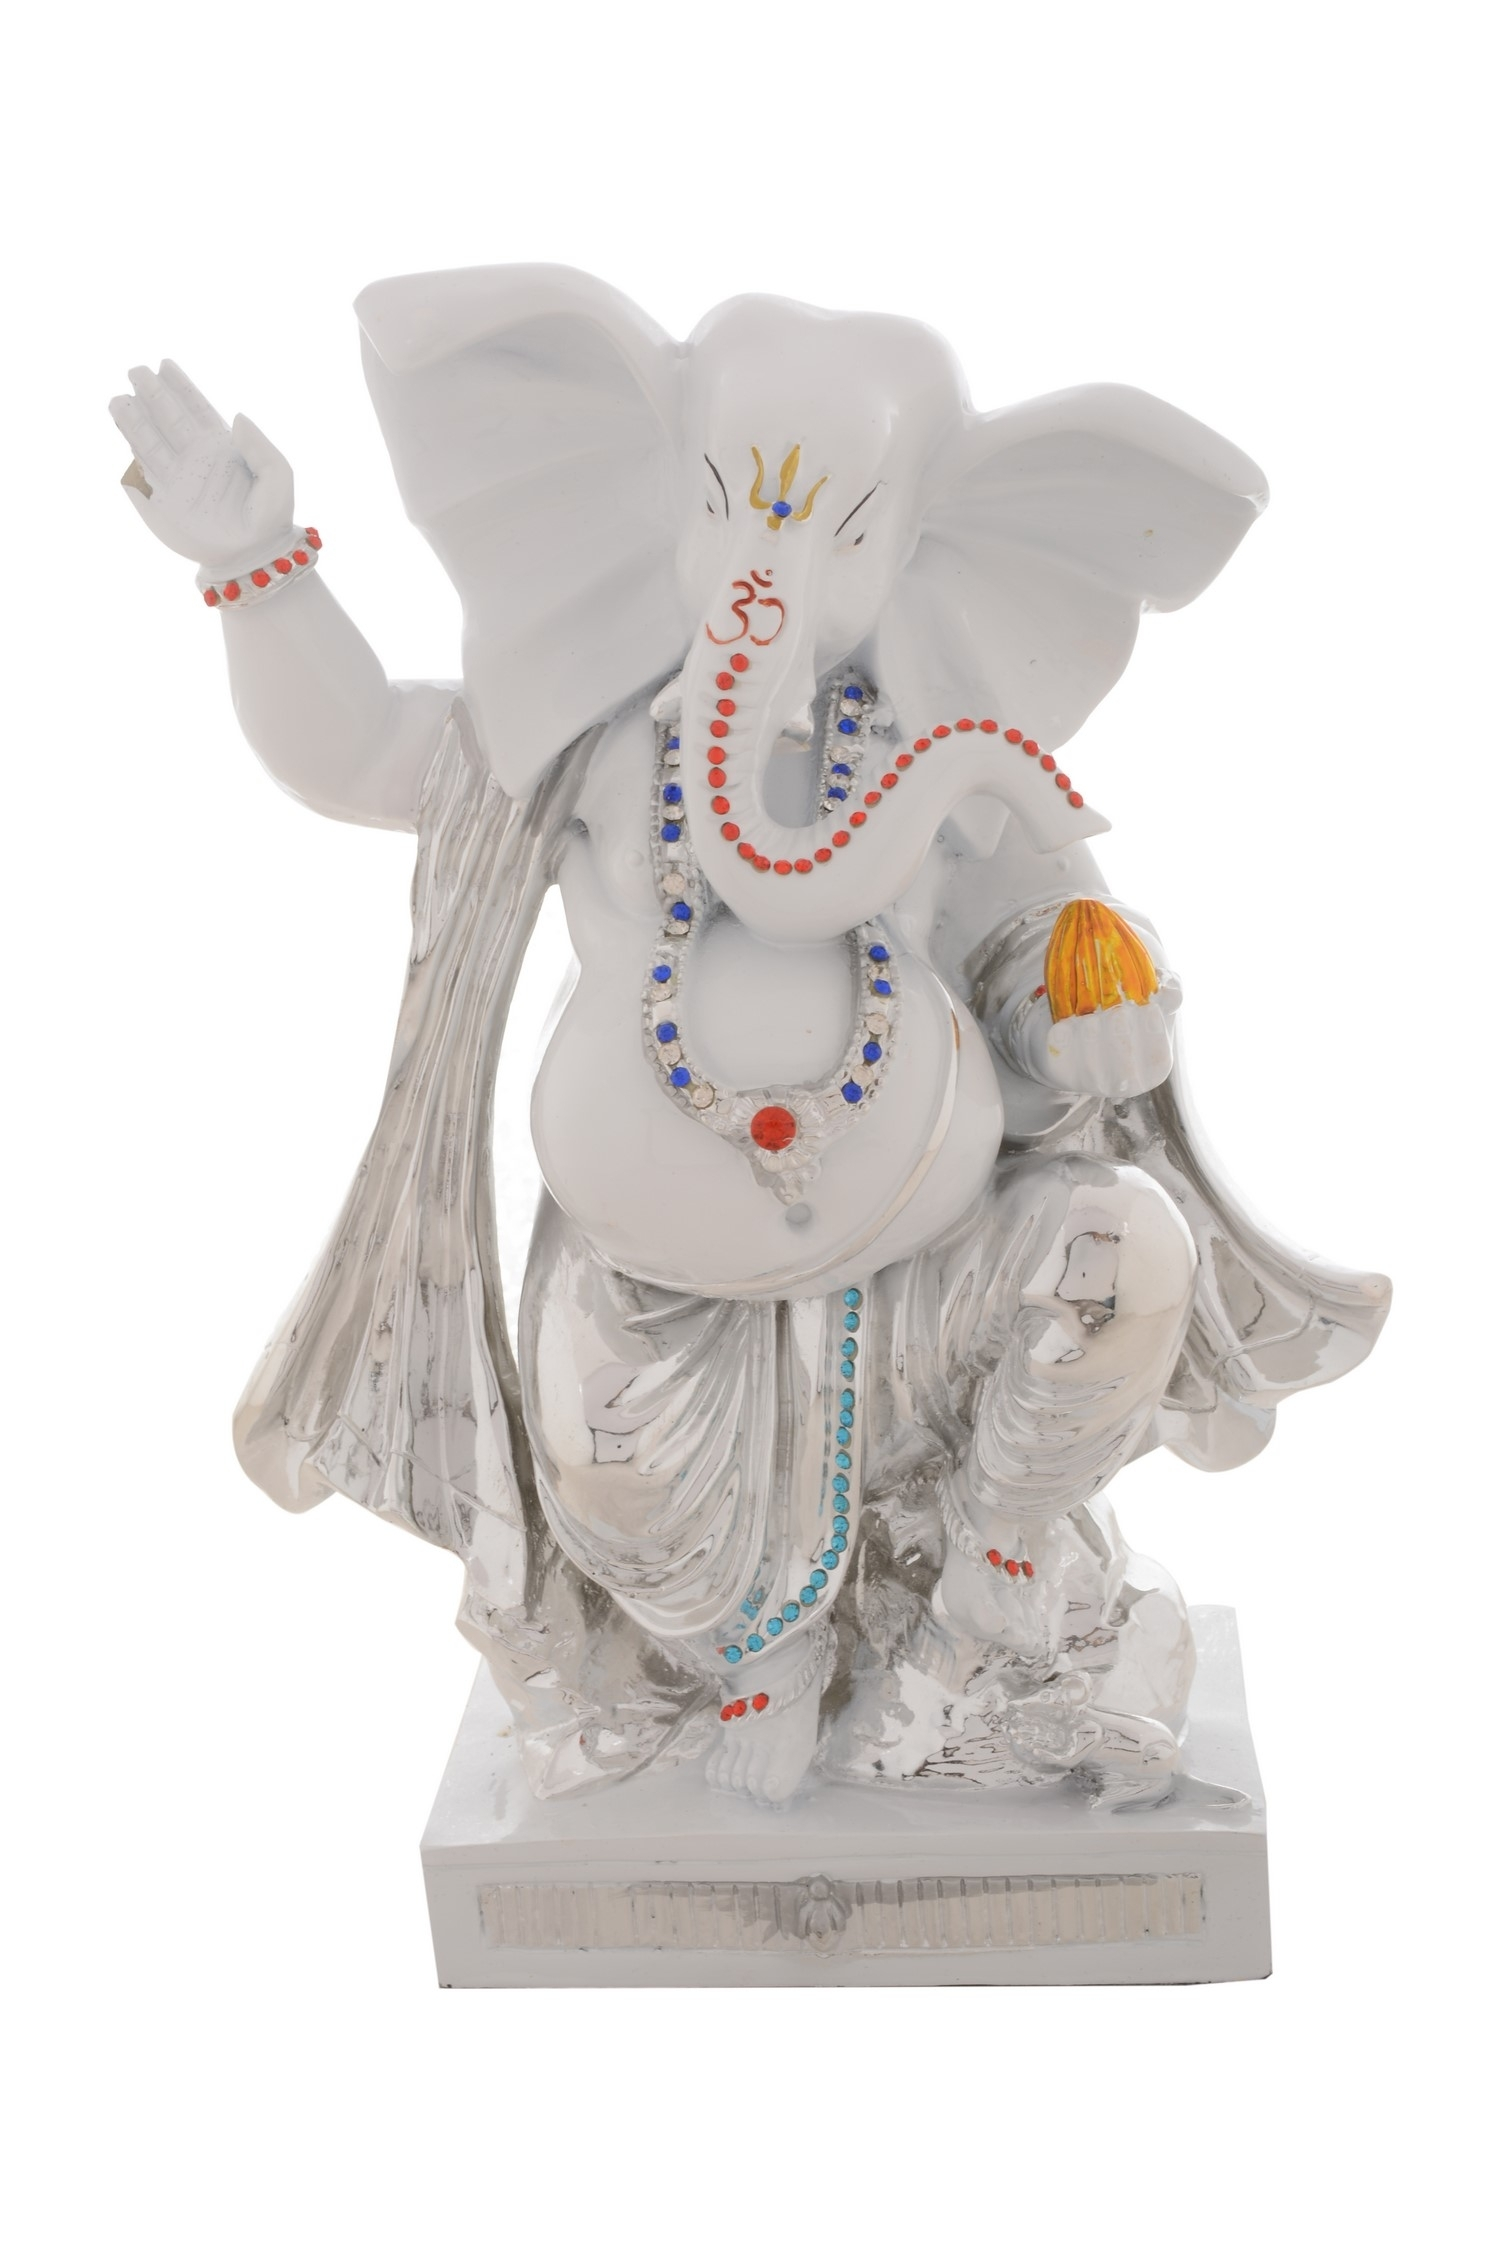 Premium Figurine of Lord Ganesha in Dancing Position Indian Home Decor